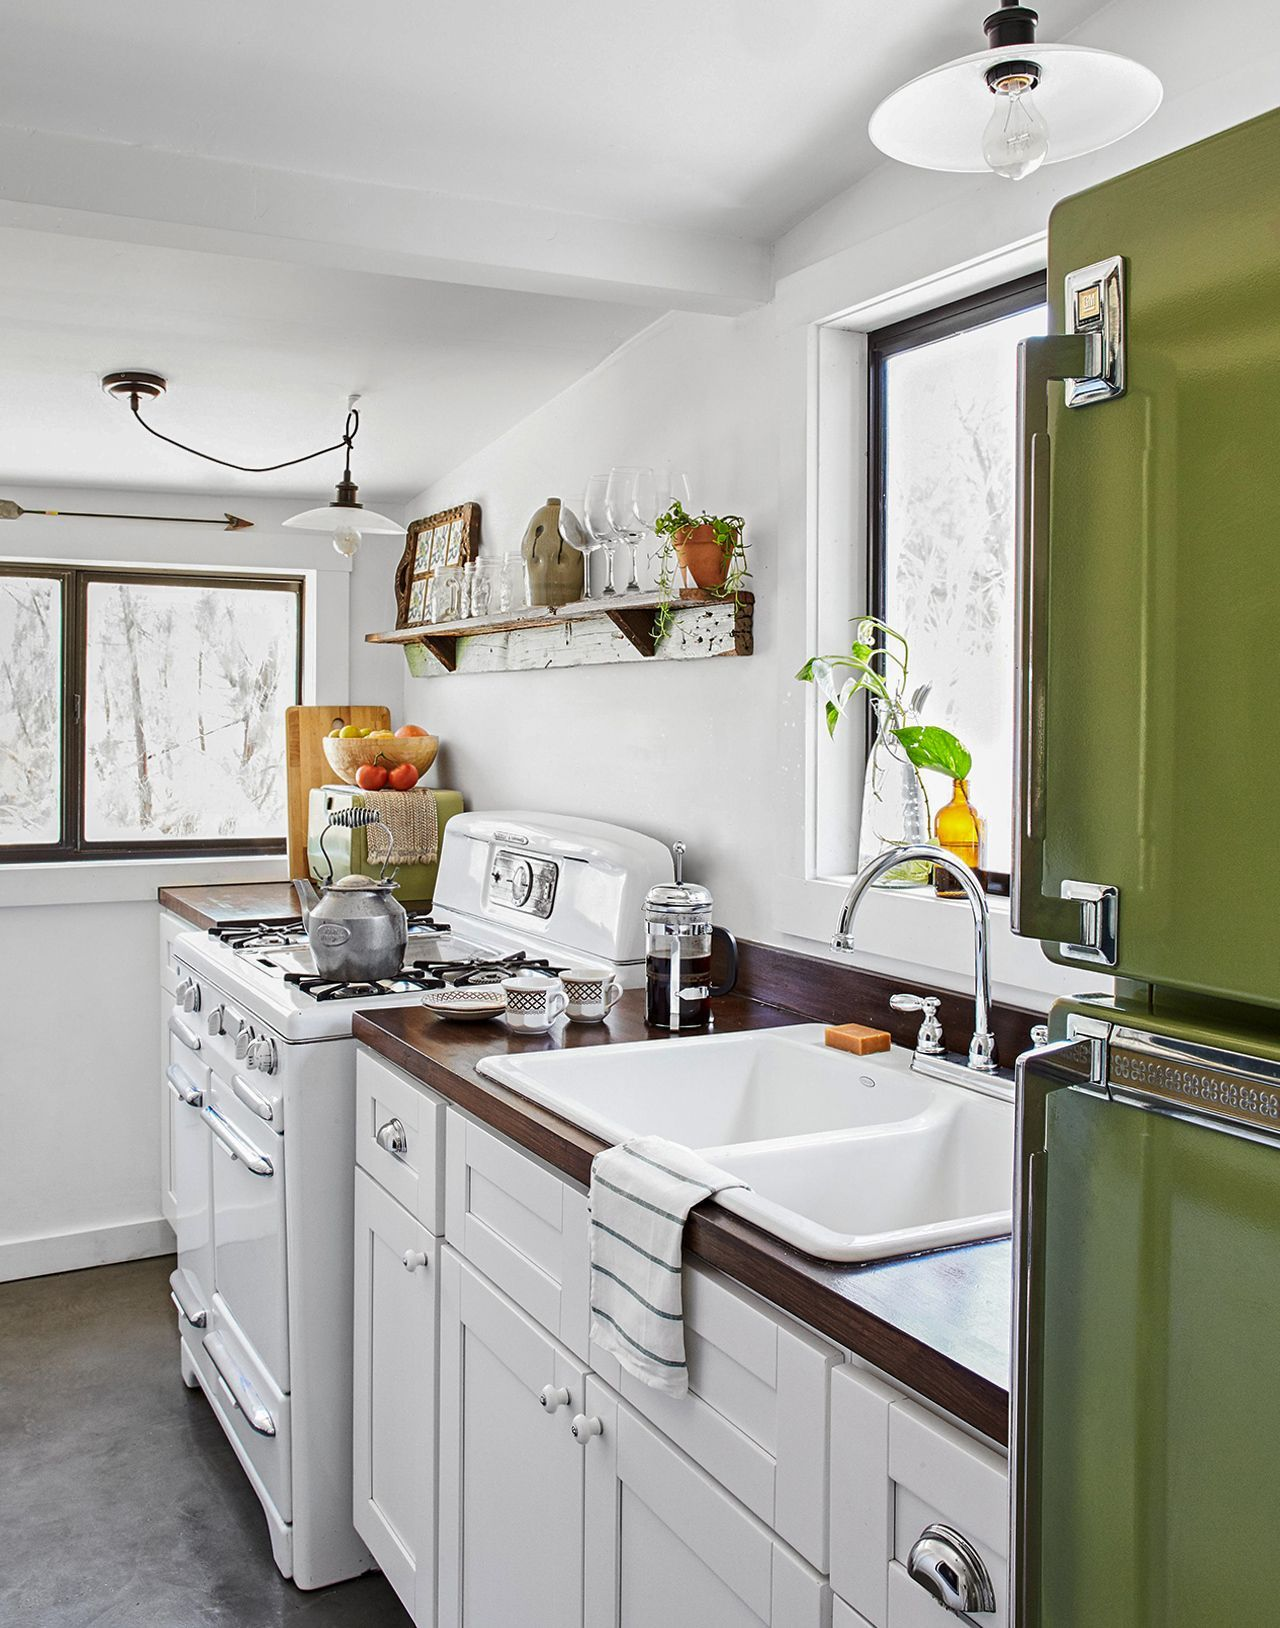 25 Winning Kitchen Color Schemes For A Look You Ll Love Forever In 2020 Kitchen Colour Schemes Green Kitchen Cabinets Black Kitchen Decor